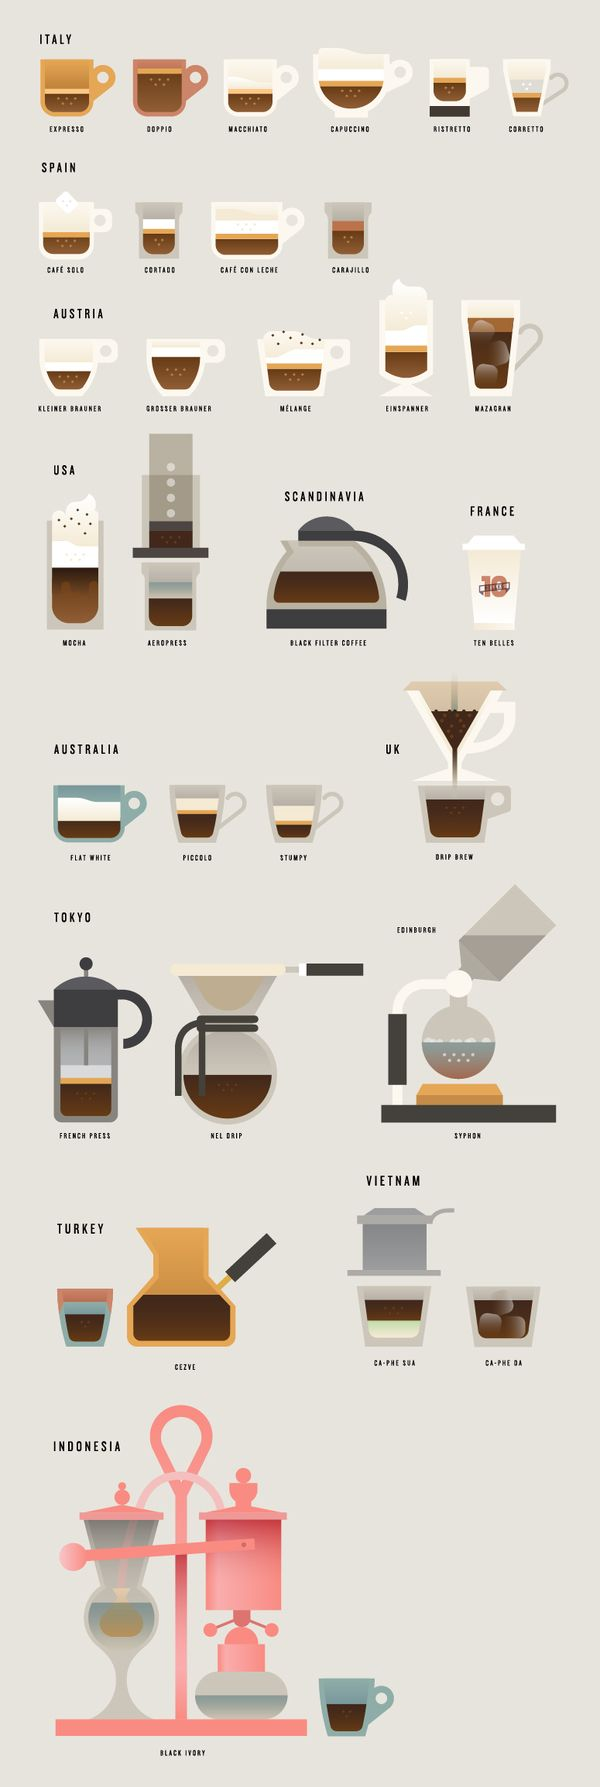 The amazing and differing world of coffee. One of my favorite things to try when…